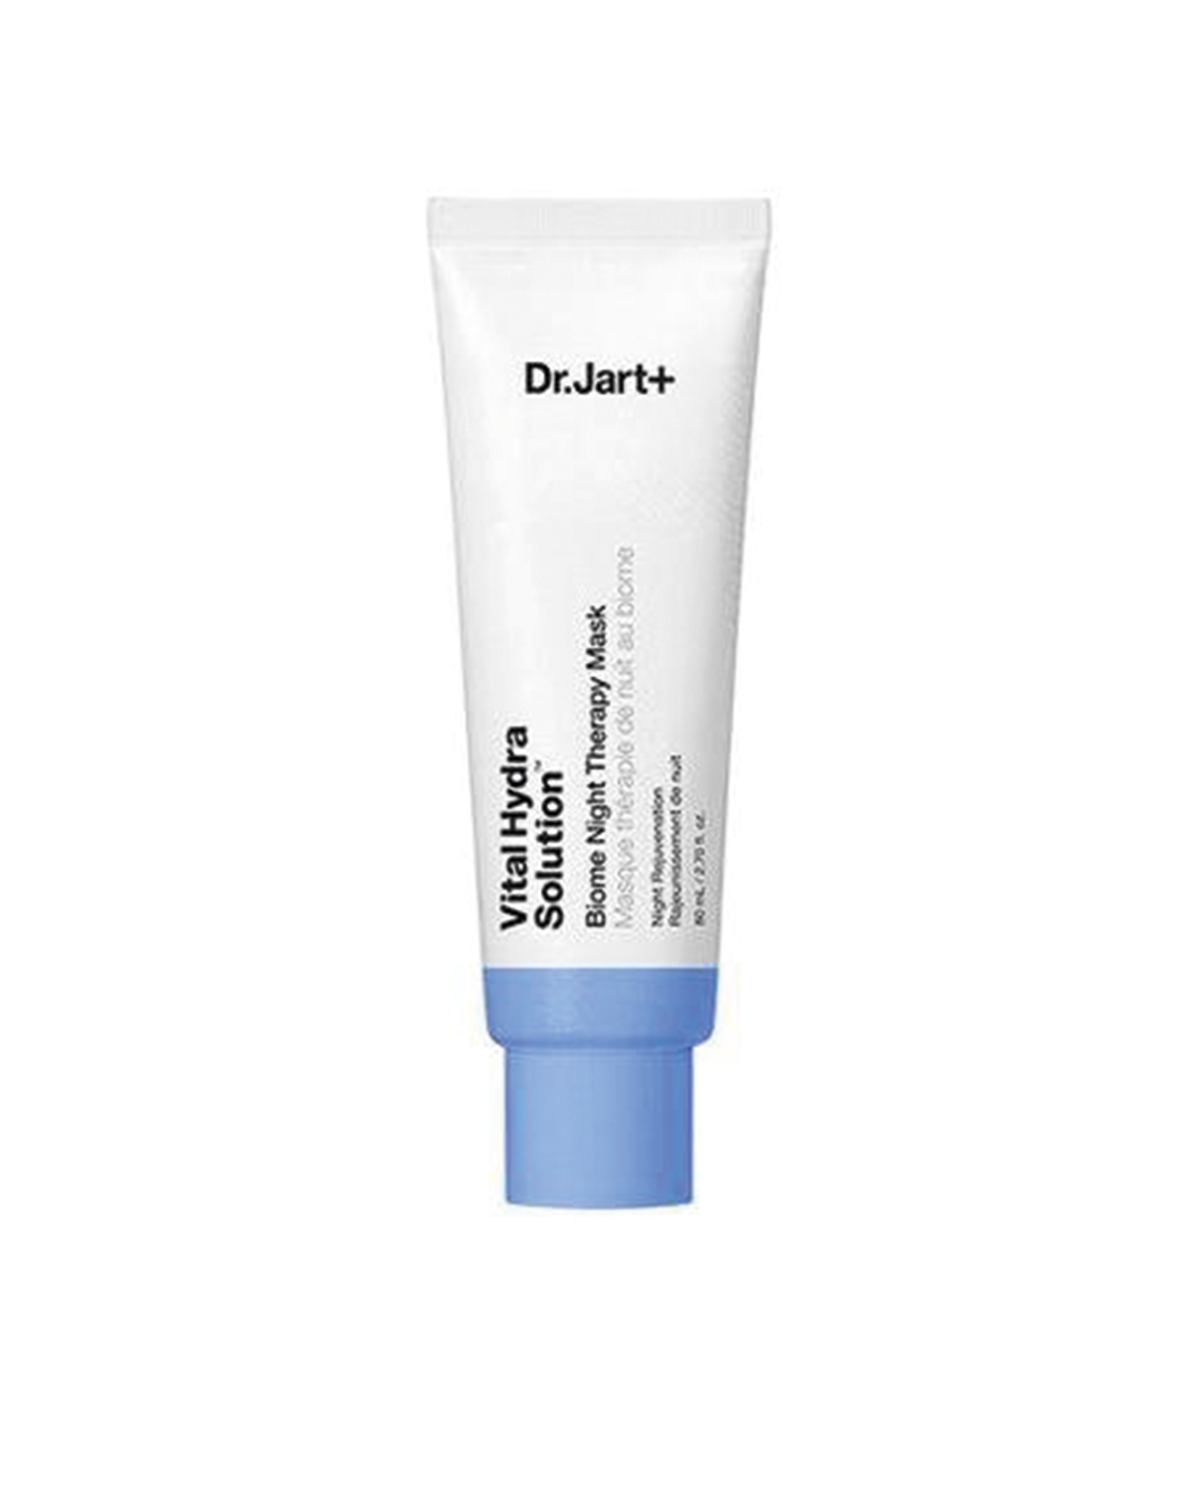 Dr.JART+ Vital Hydra Solution Biome Night Therapy Mask 80 ml